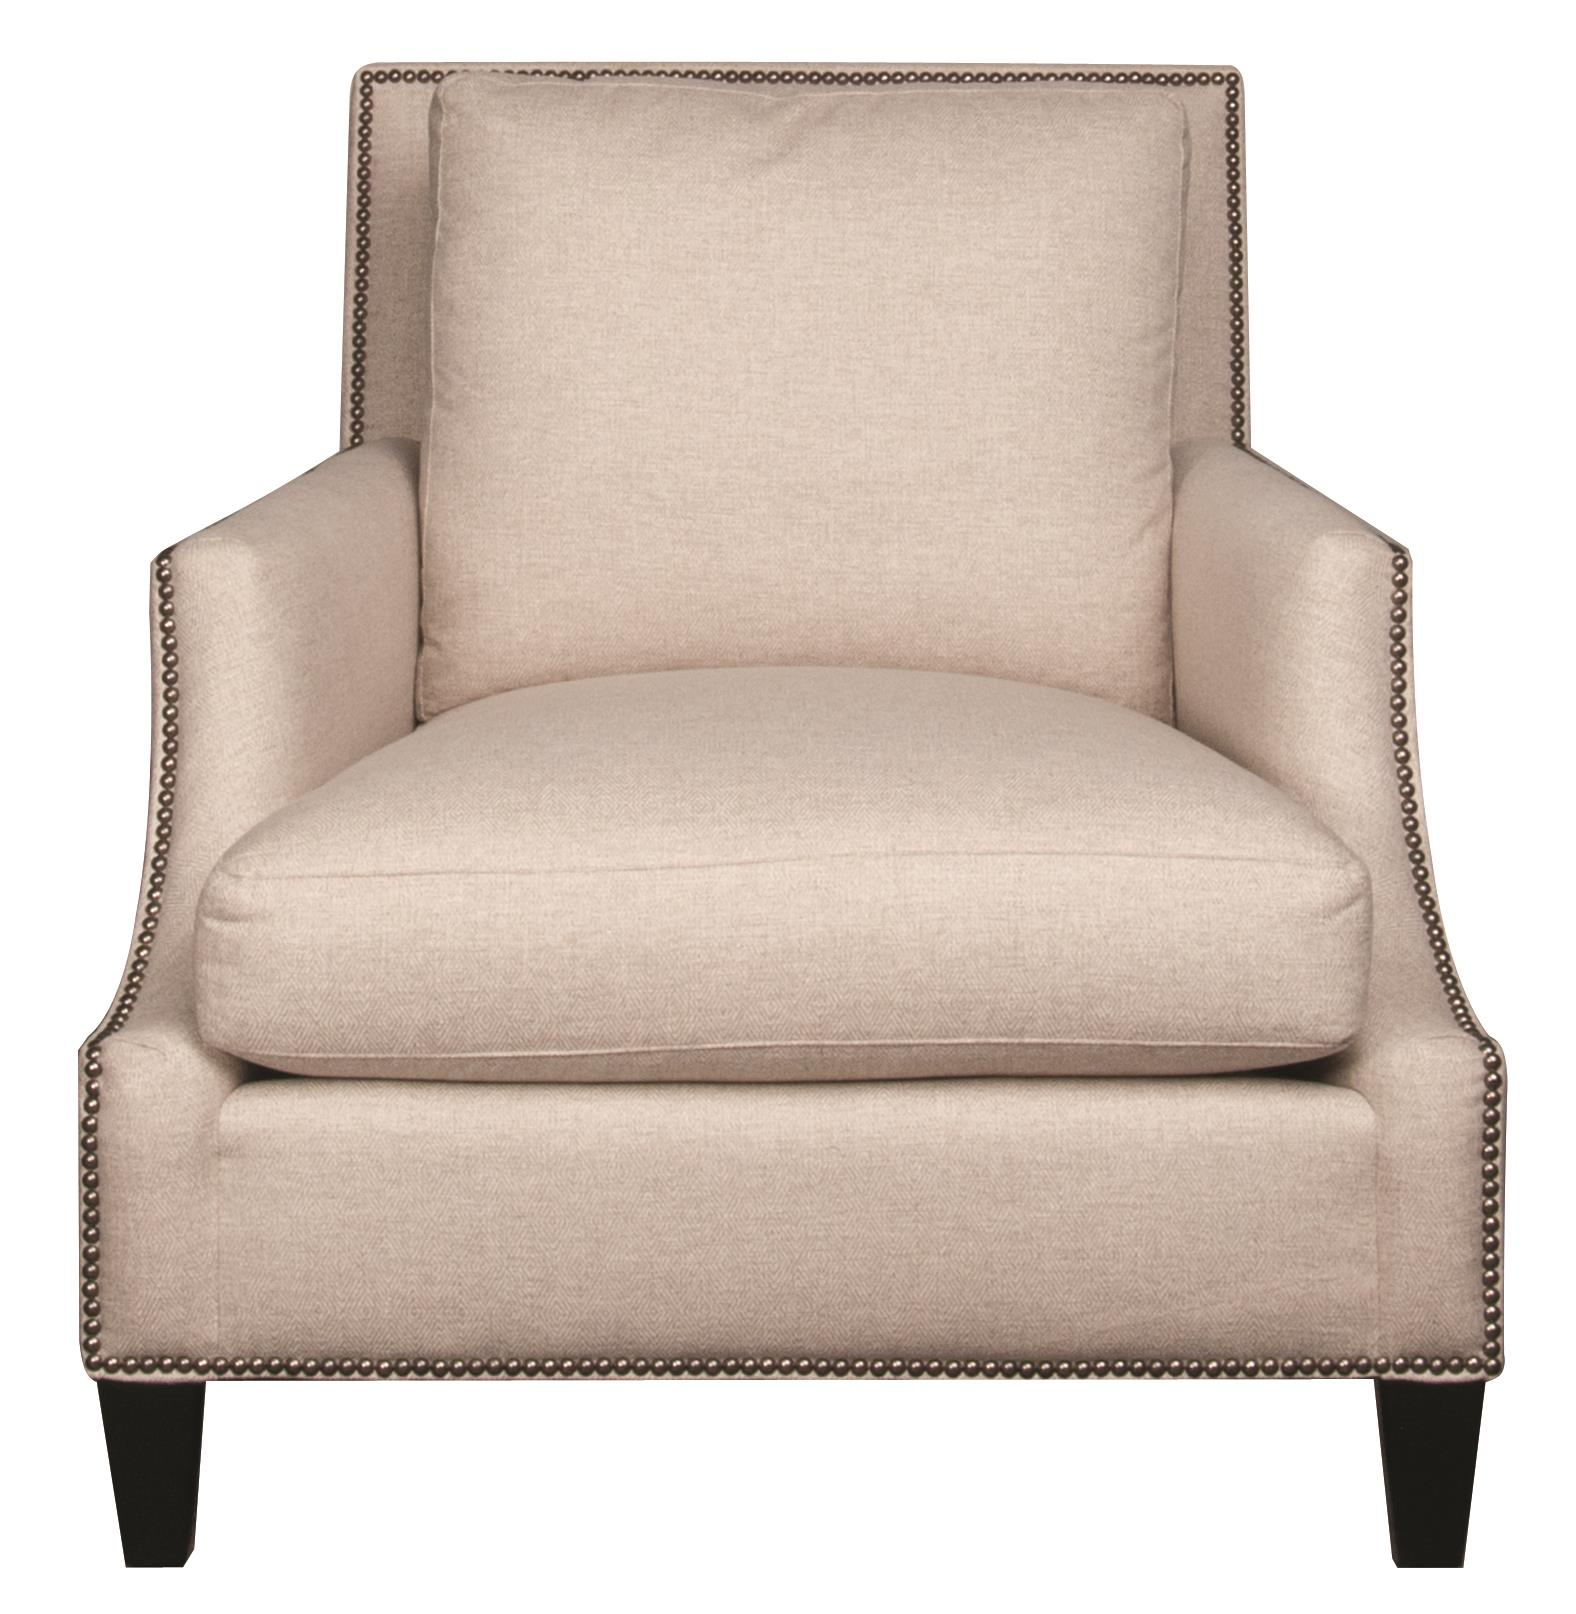 Bernhardt Crawford Crawford Chair - Item Number: 993070574